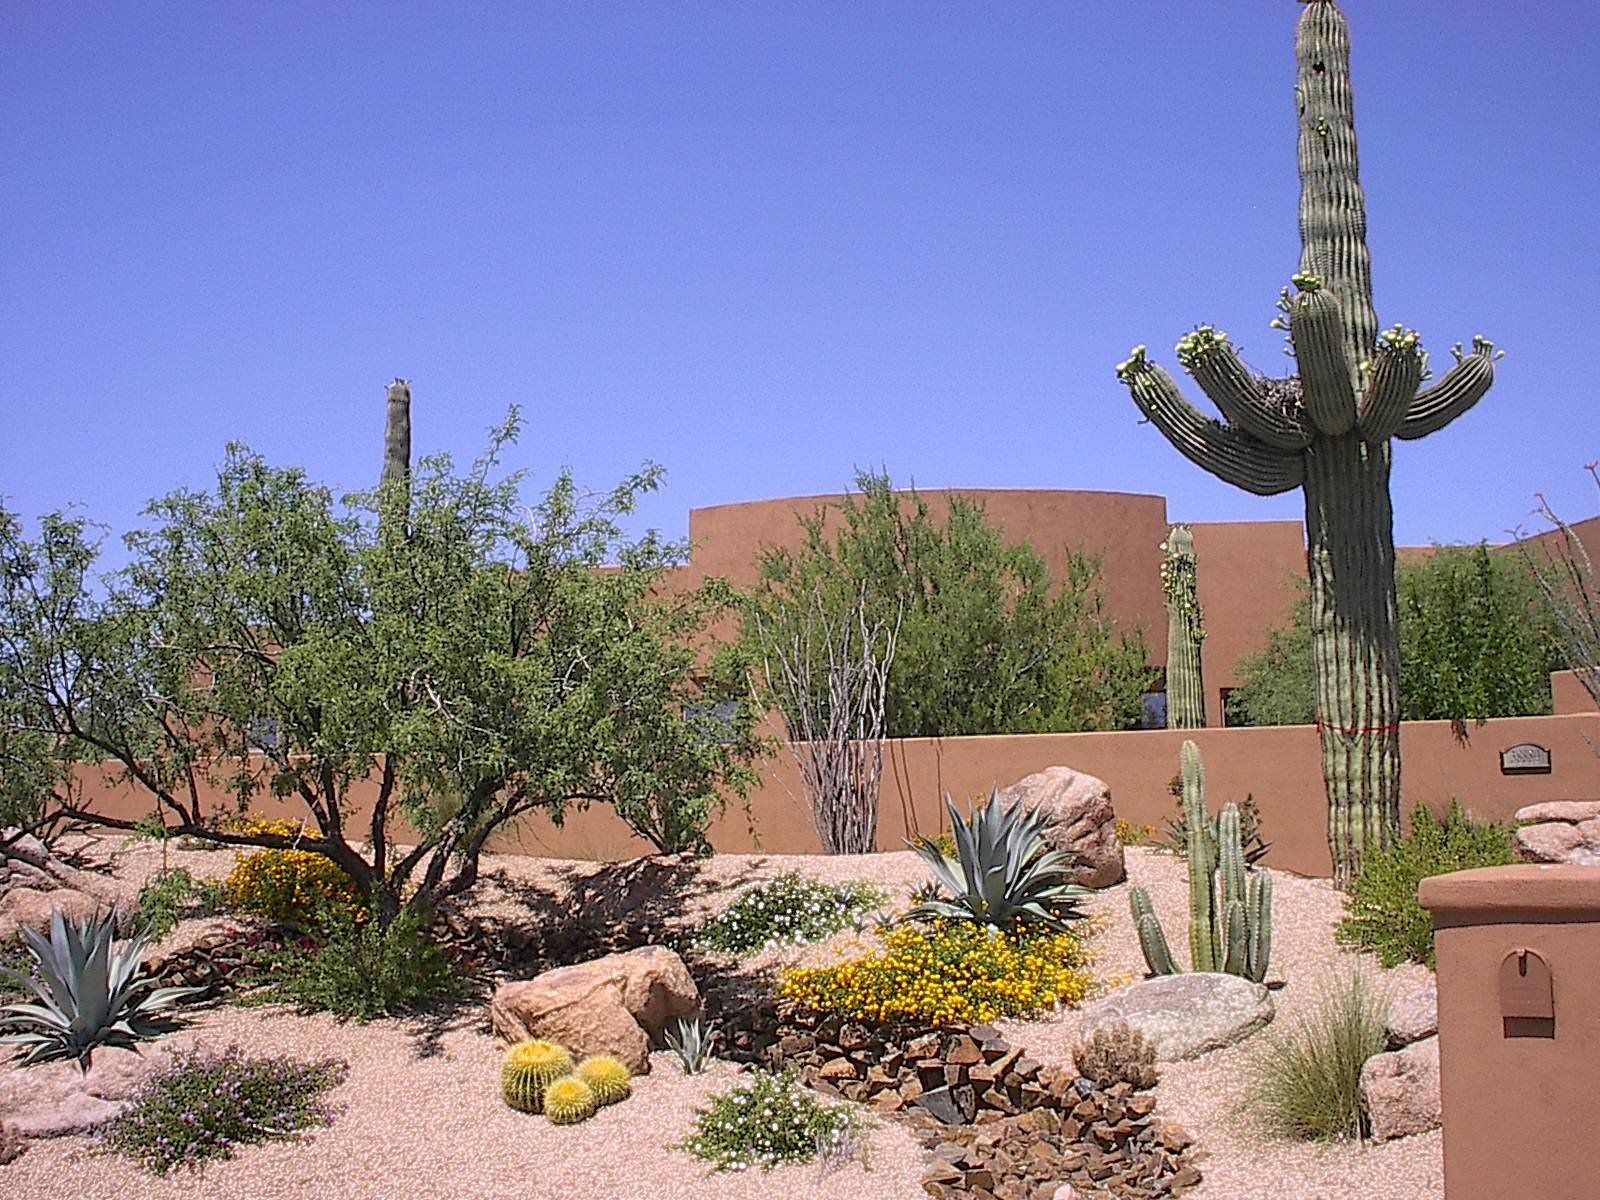 Desert Landscaping Ideas | Landscape Creations Of Arizona Offers Desert And  Tropical Options That .